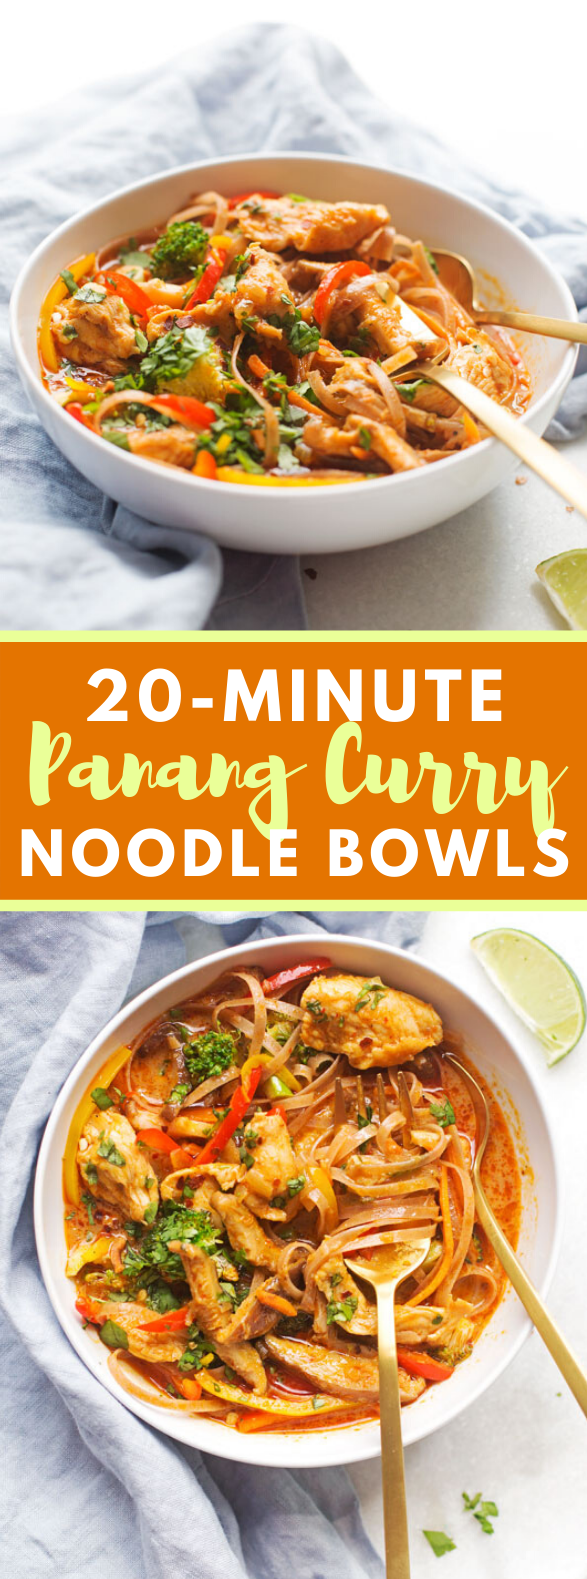 20 – MINUTE CHICKEN PANANG CURRY NOODLE BOWLS #weeknightdinner #veggies